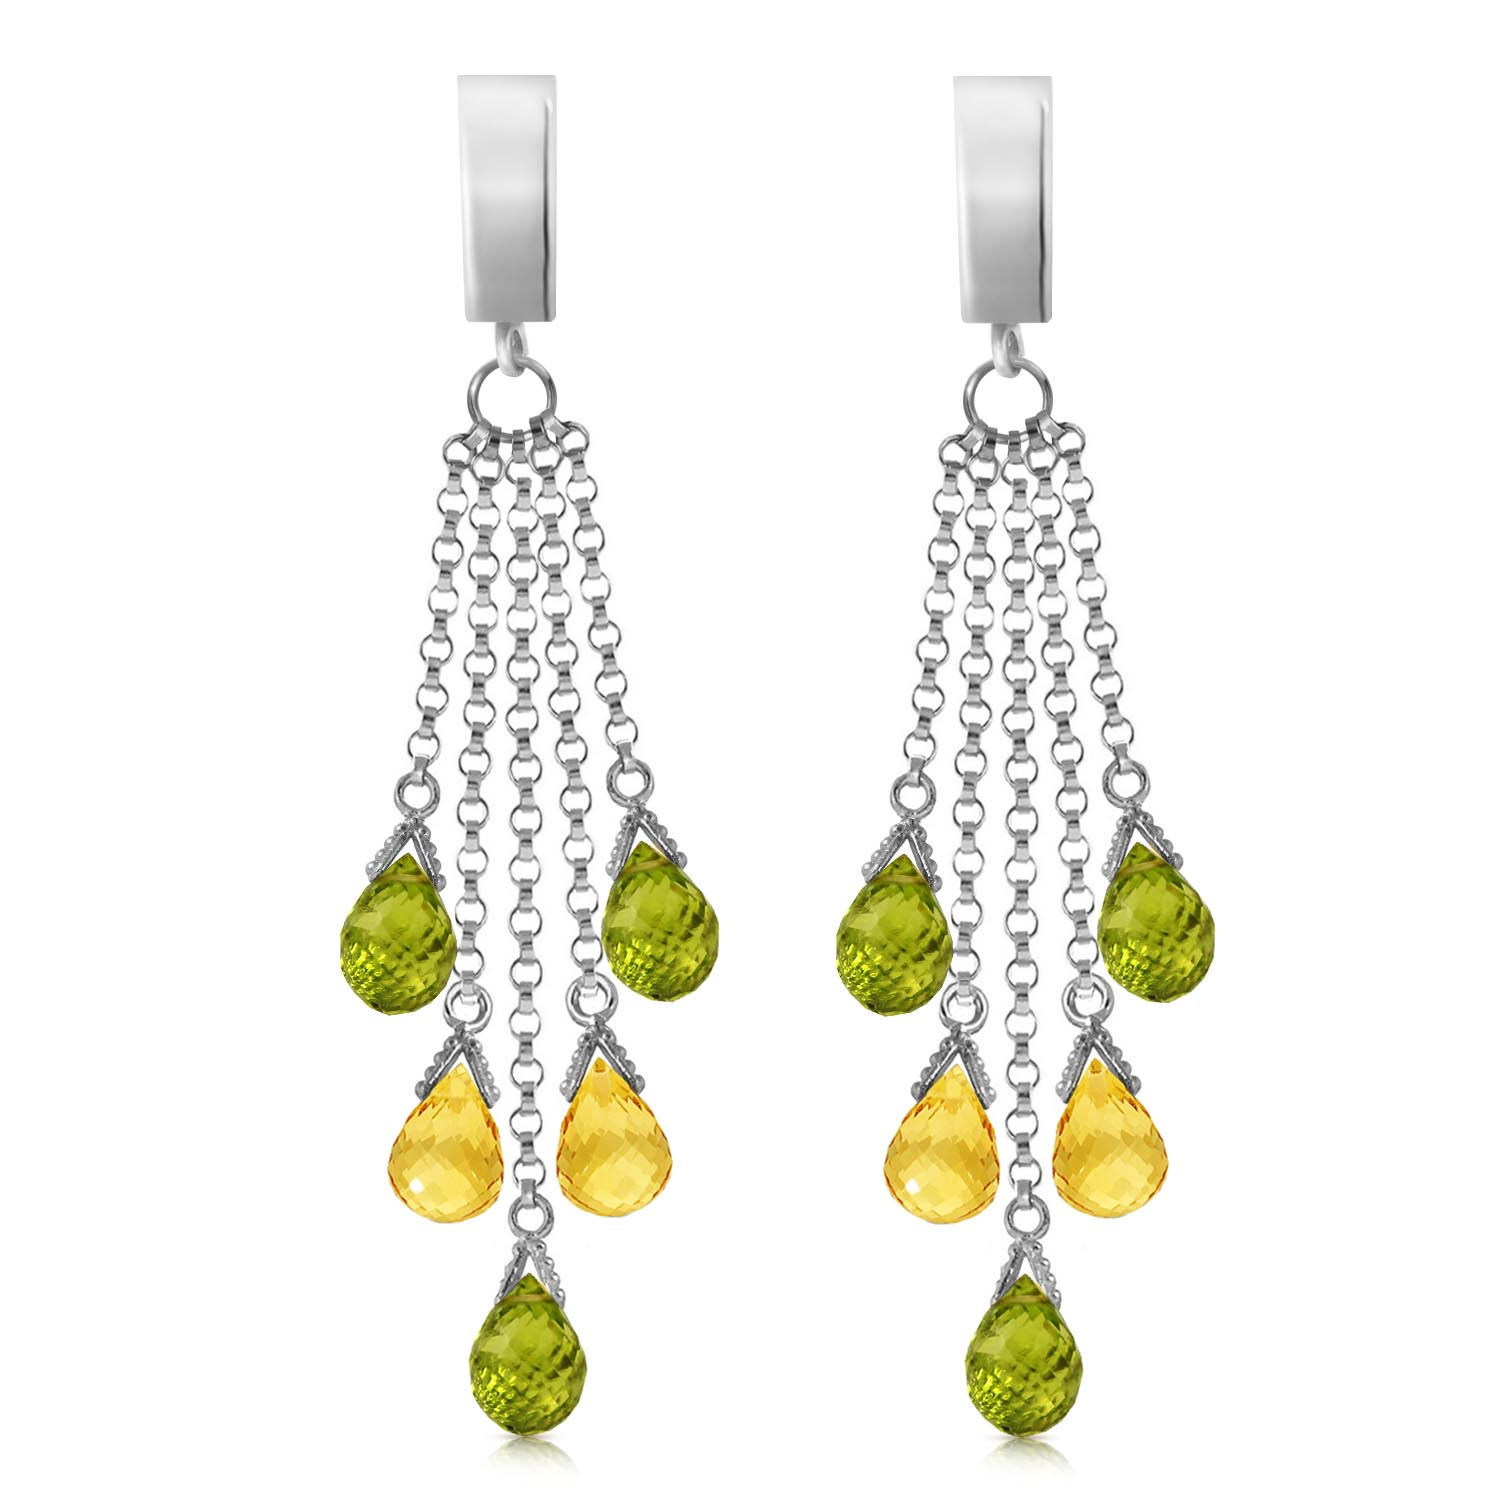 Peridot and Citrine Droplet Earrings 7.3ctw in 9ct White Gold